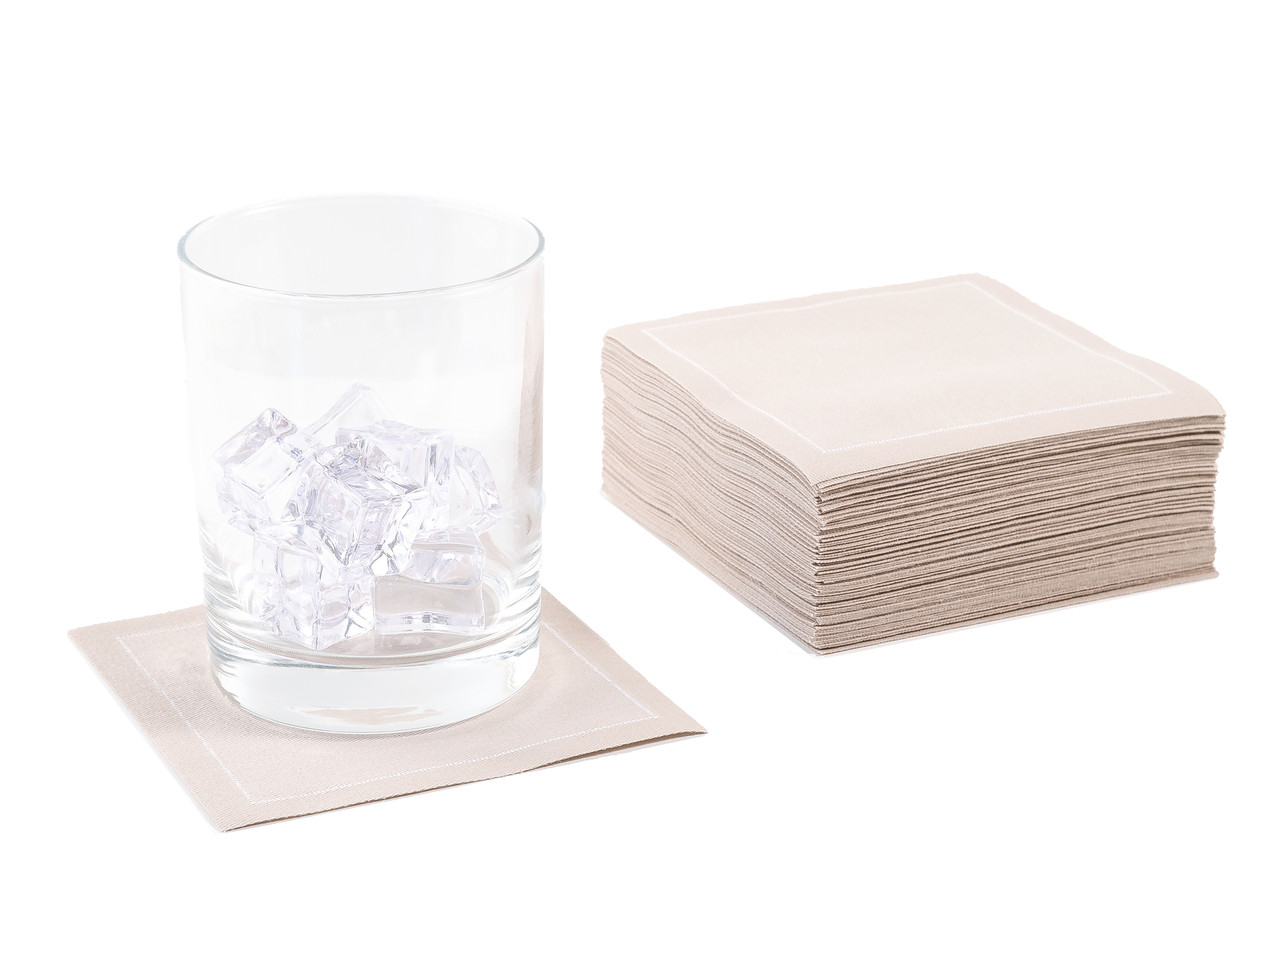 "Sand Cotton Cocktail (200 GSM) - 4.5"" x 4.5"" - 1200 Units"